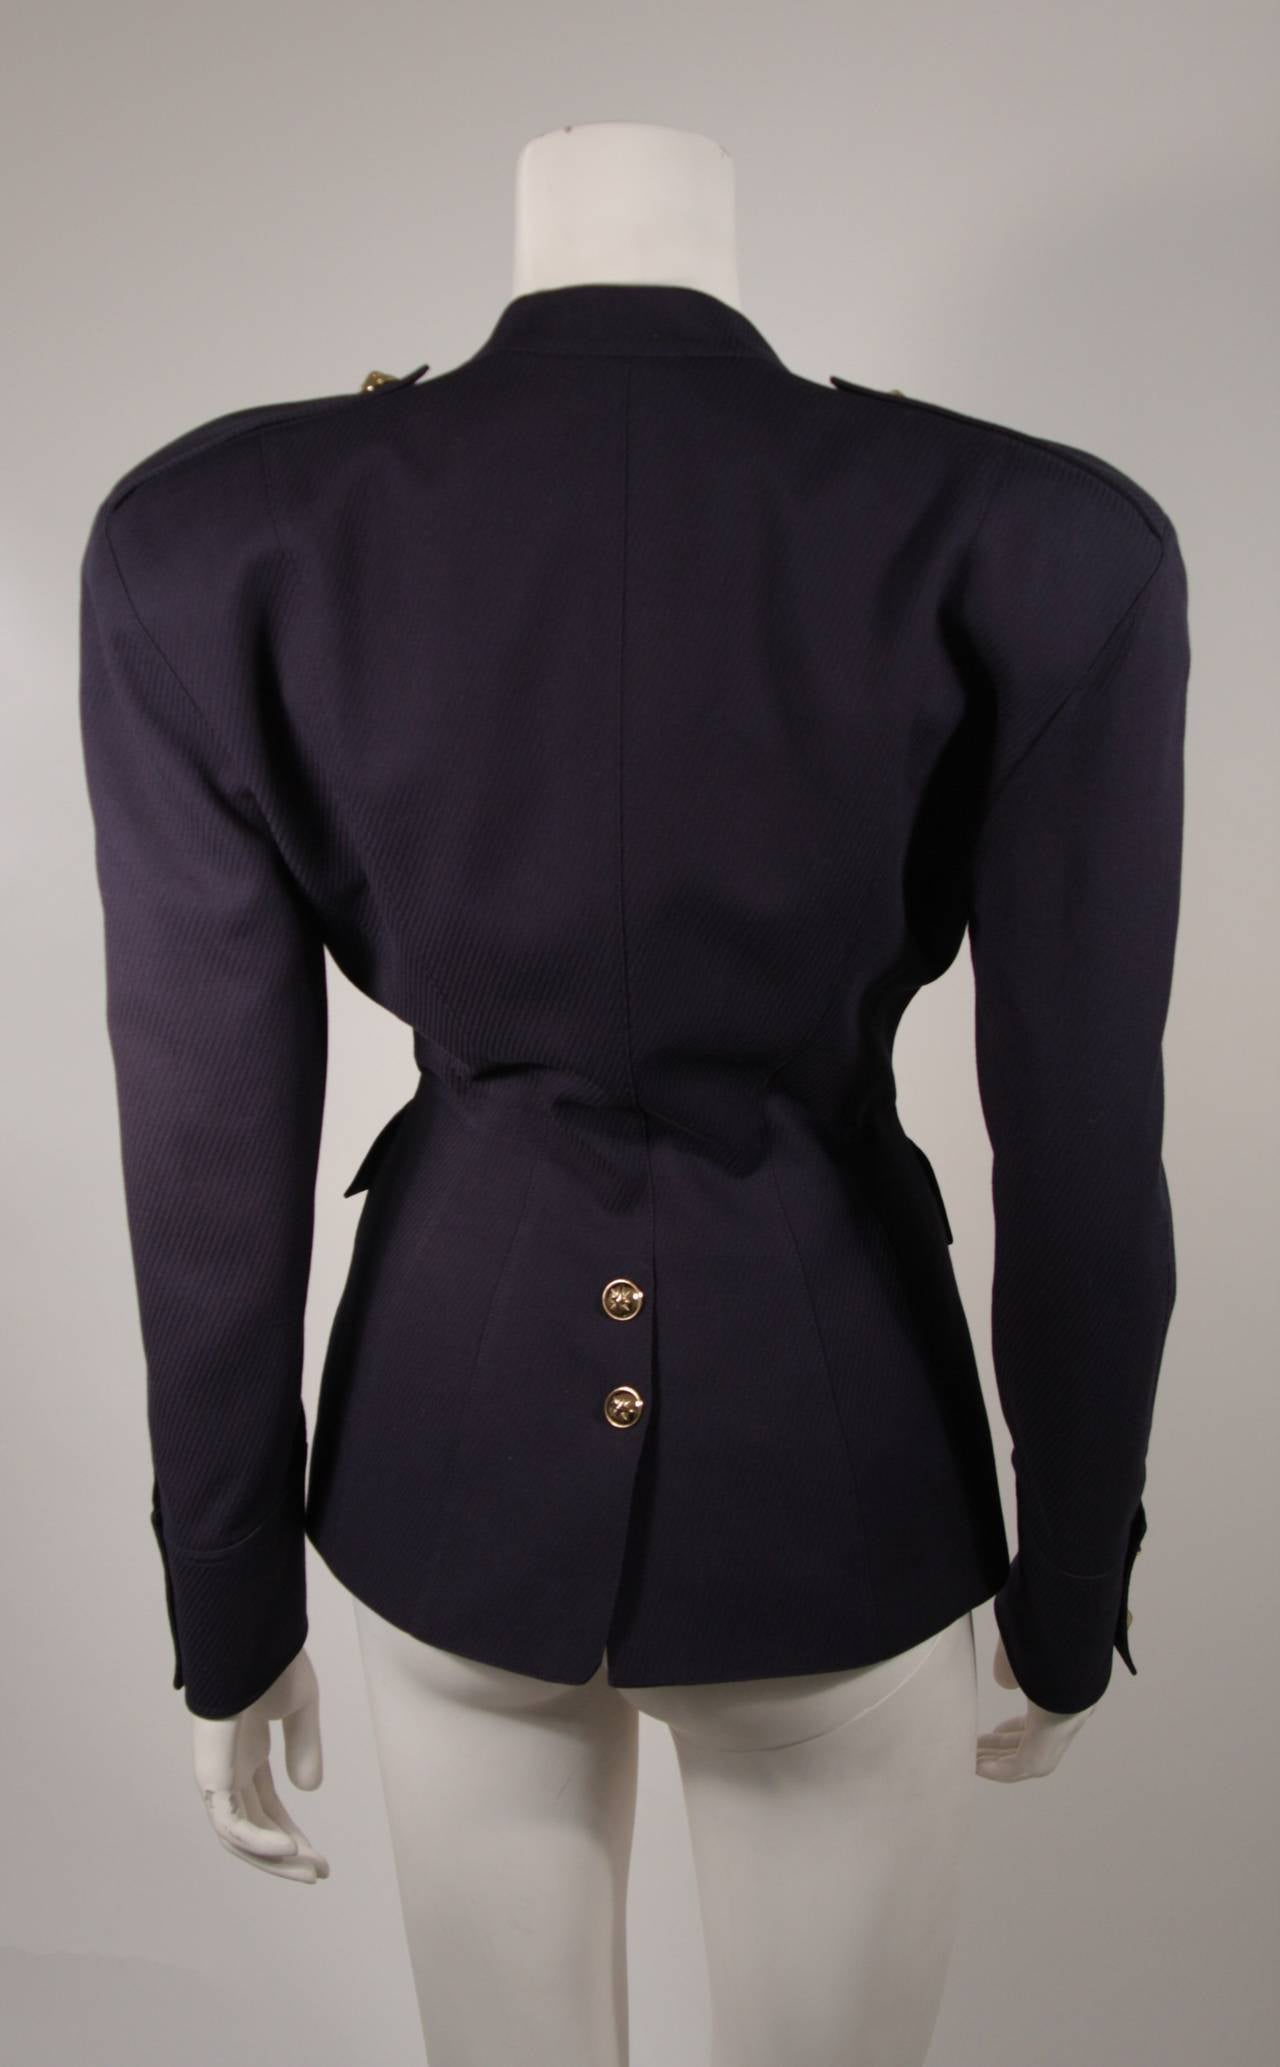 Theirry Mugler Navy Military Inspired Blazer with Gold Buttons Size 42 6